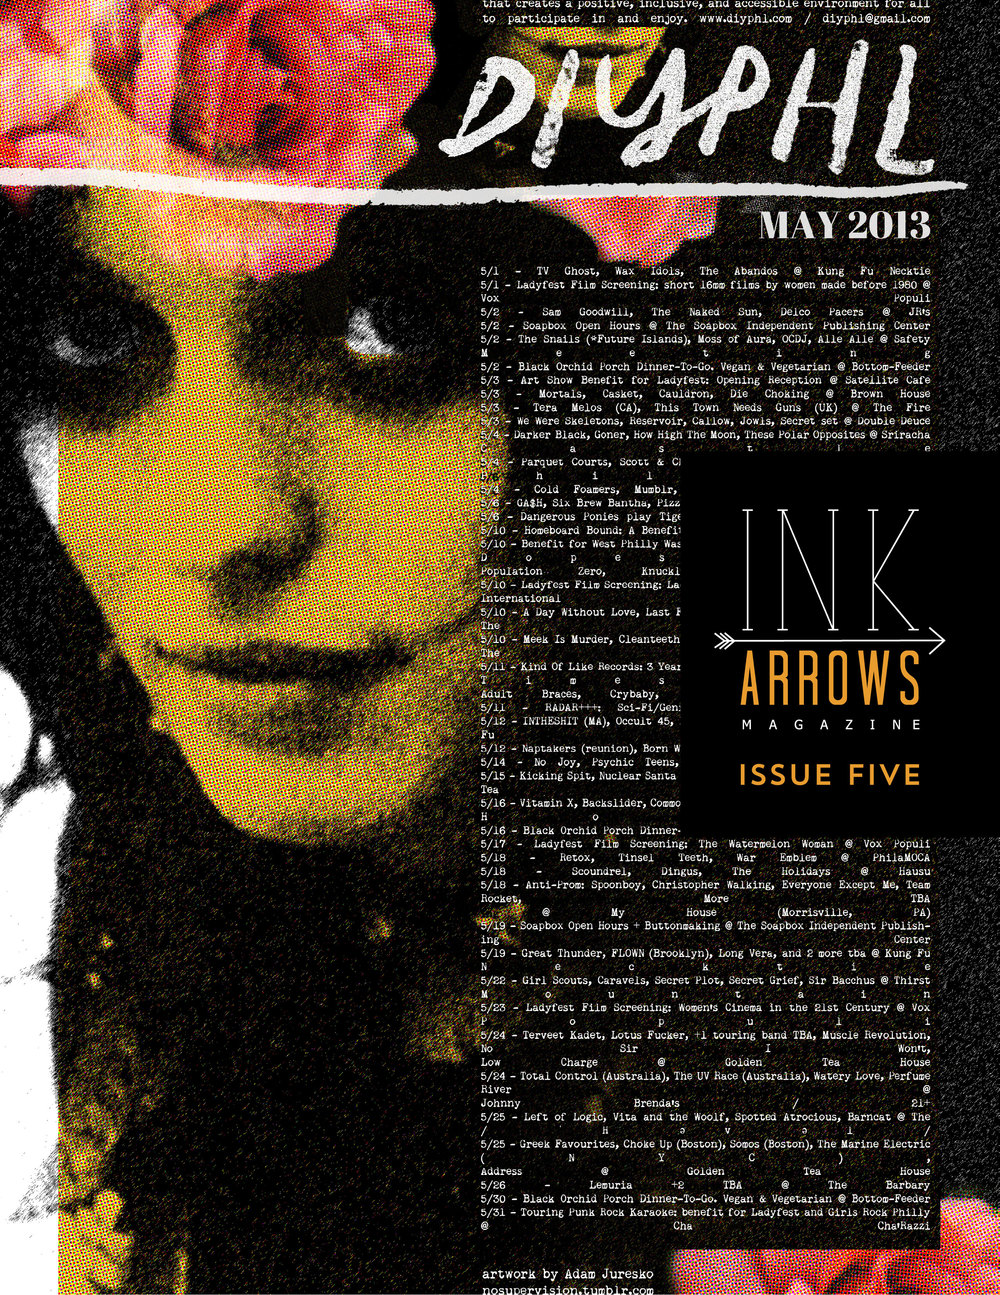 inkarrowsmag_issue_five.jpg